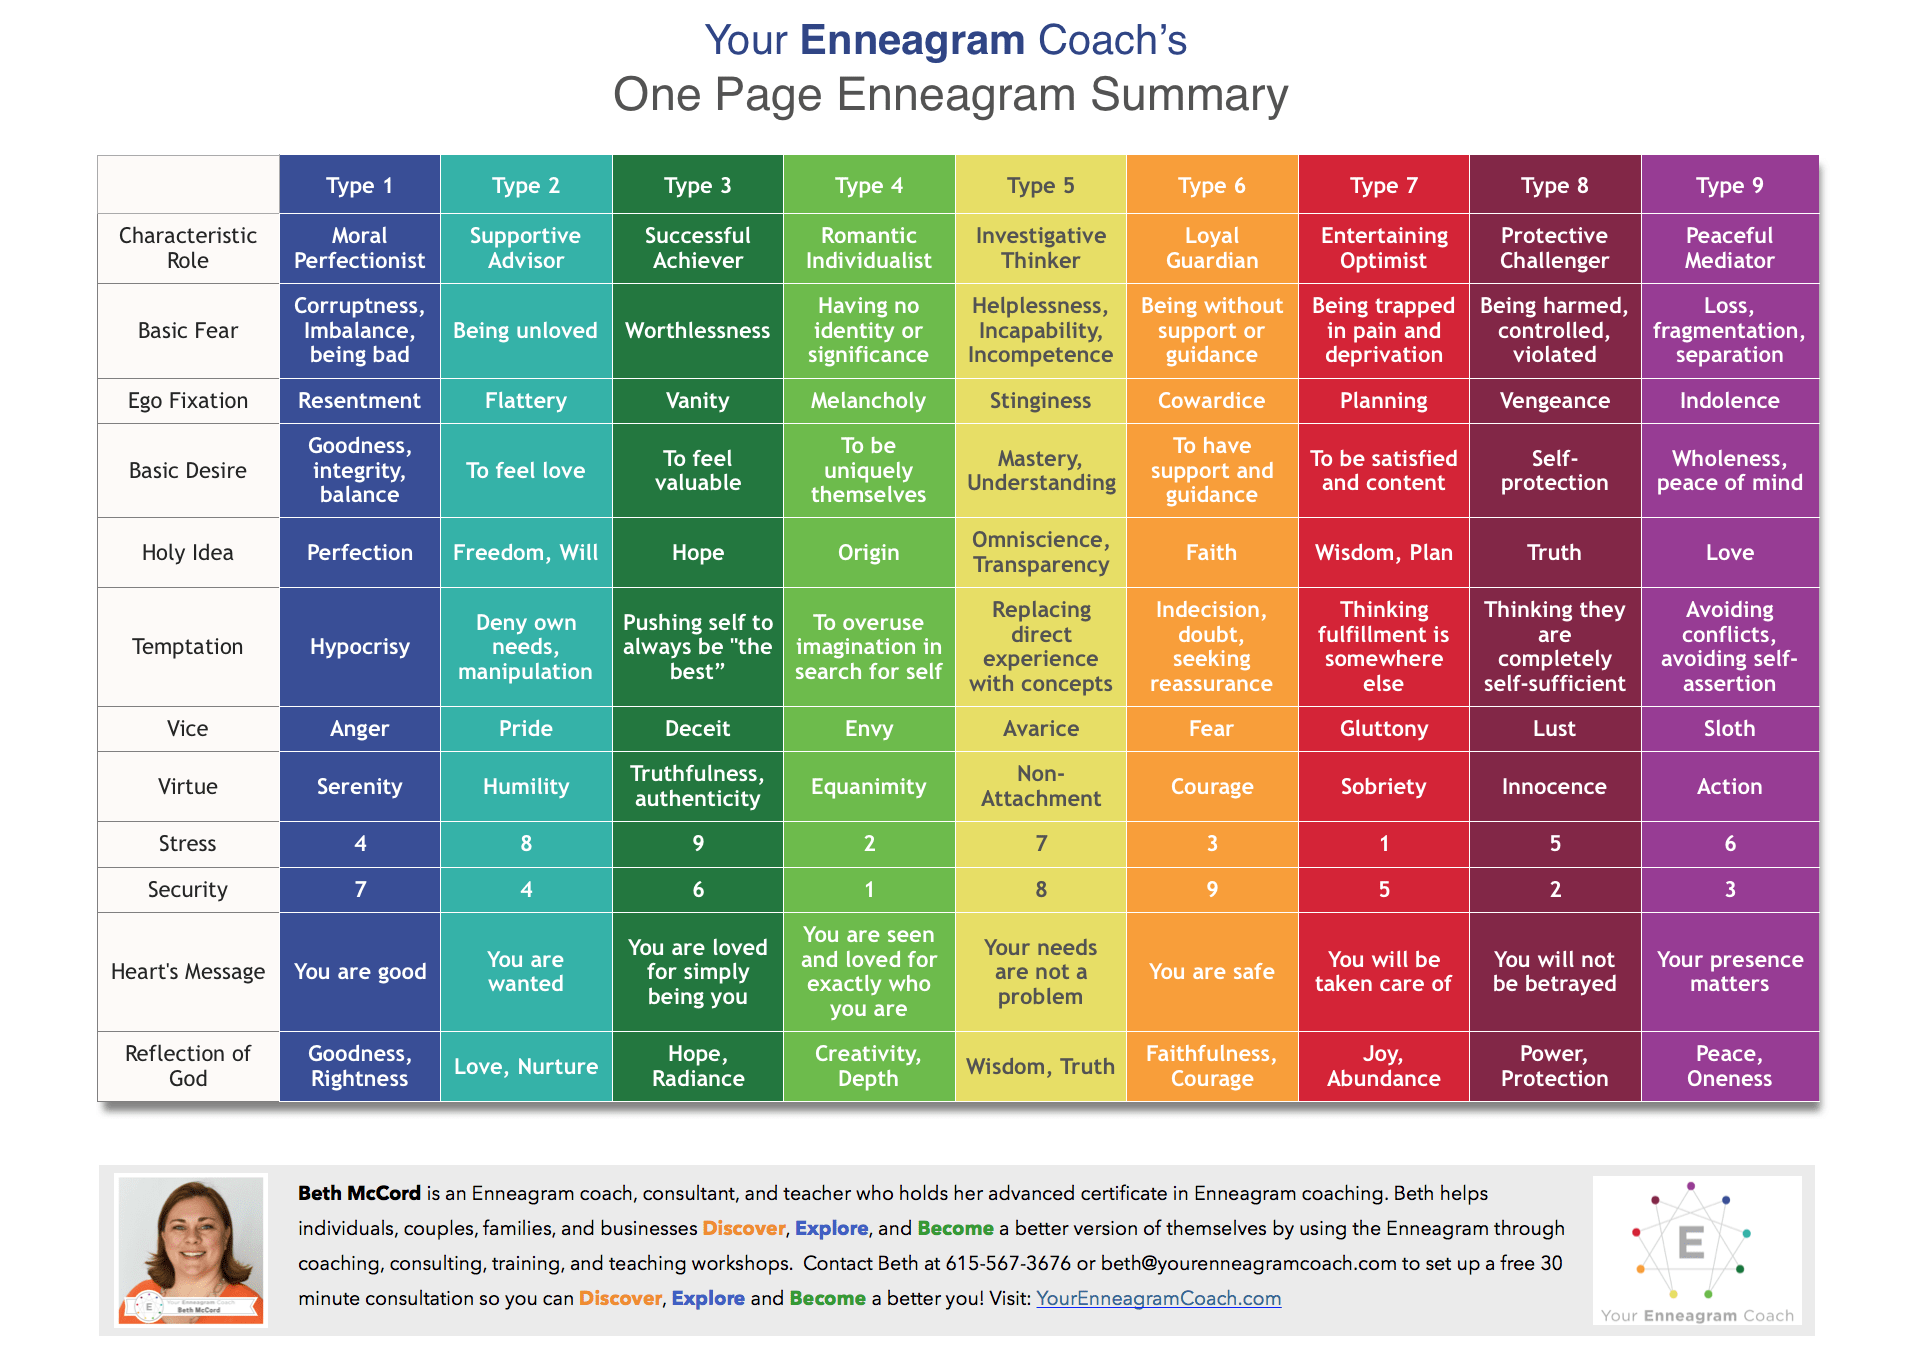 One Page Enneagram Summary From Your Enneagram Coach Beth